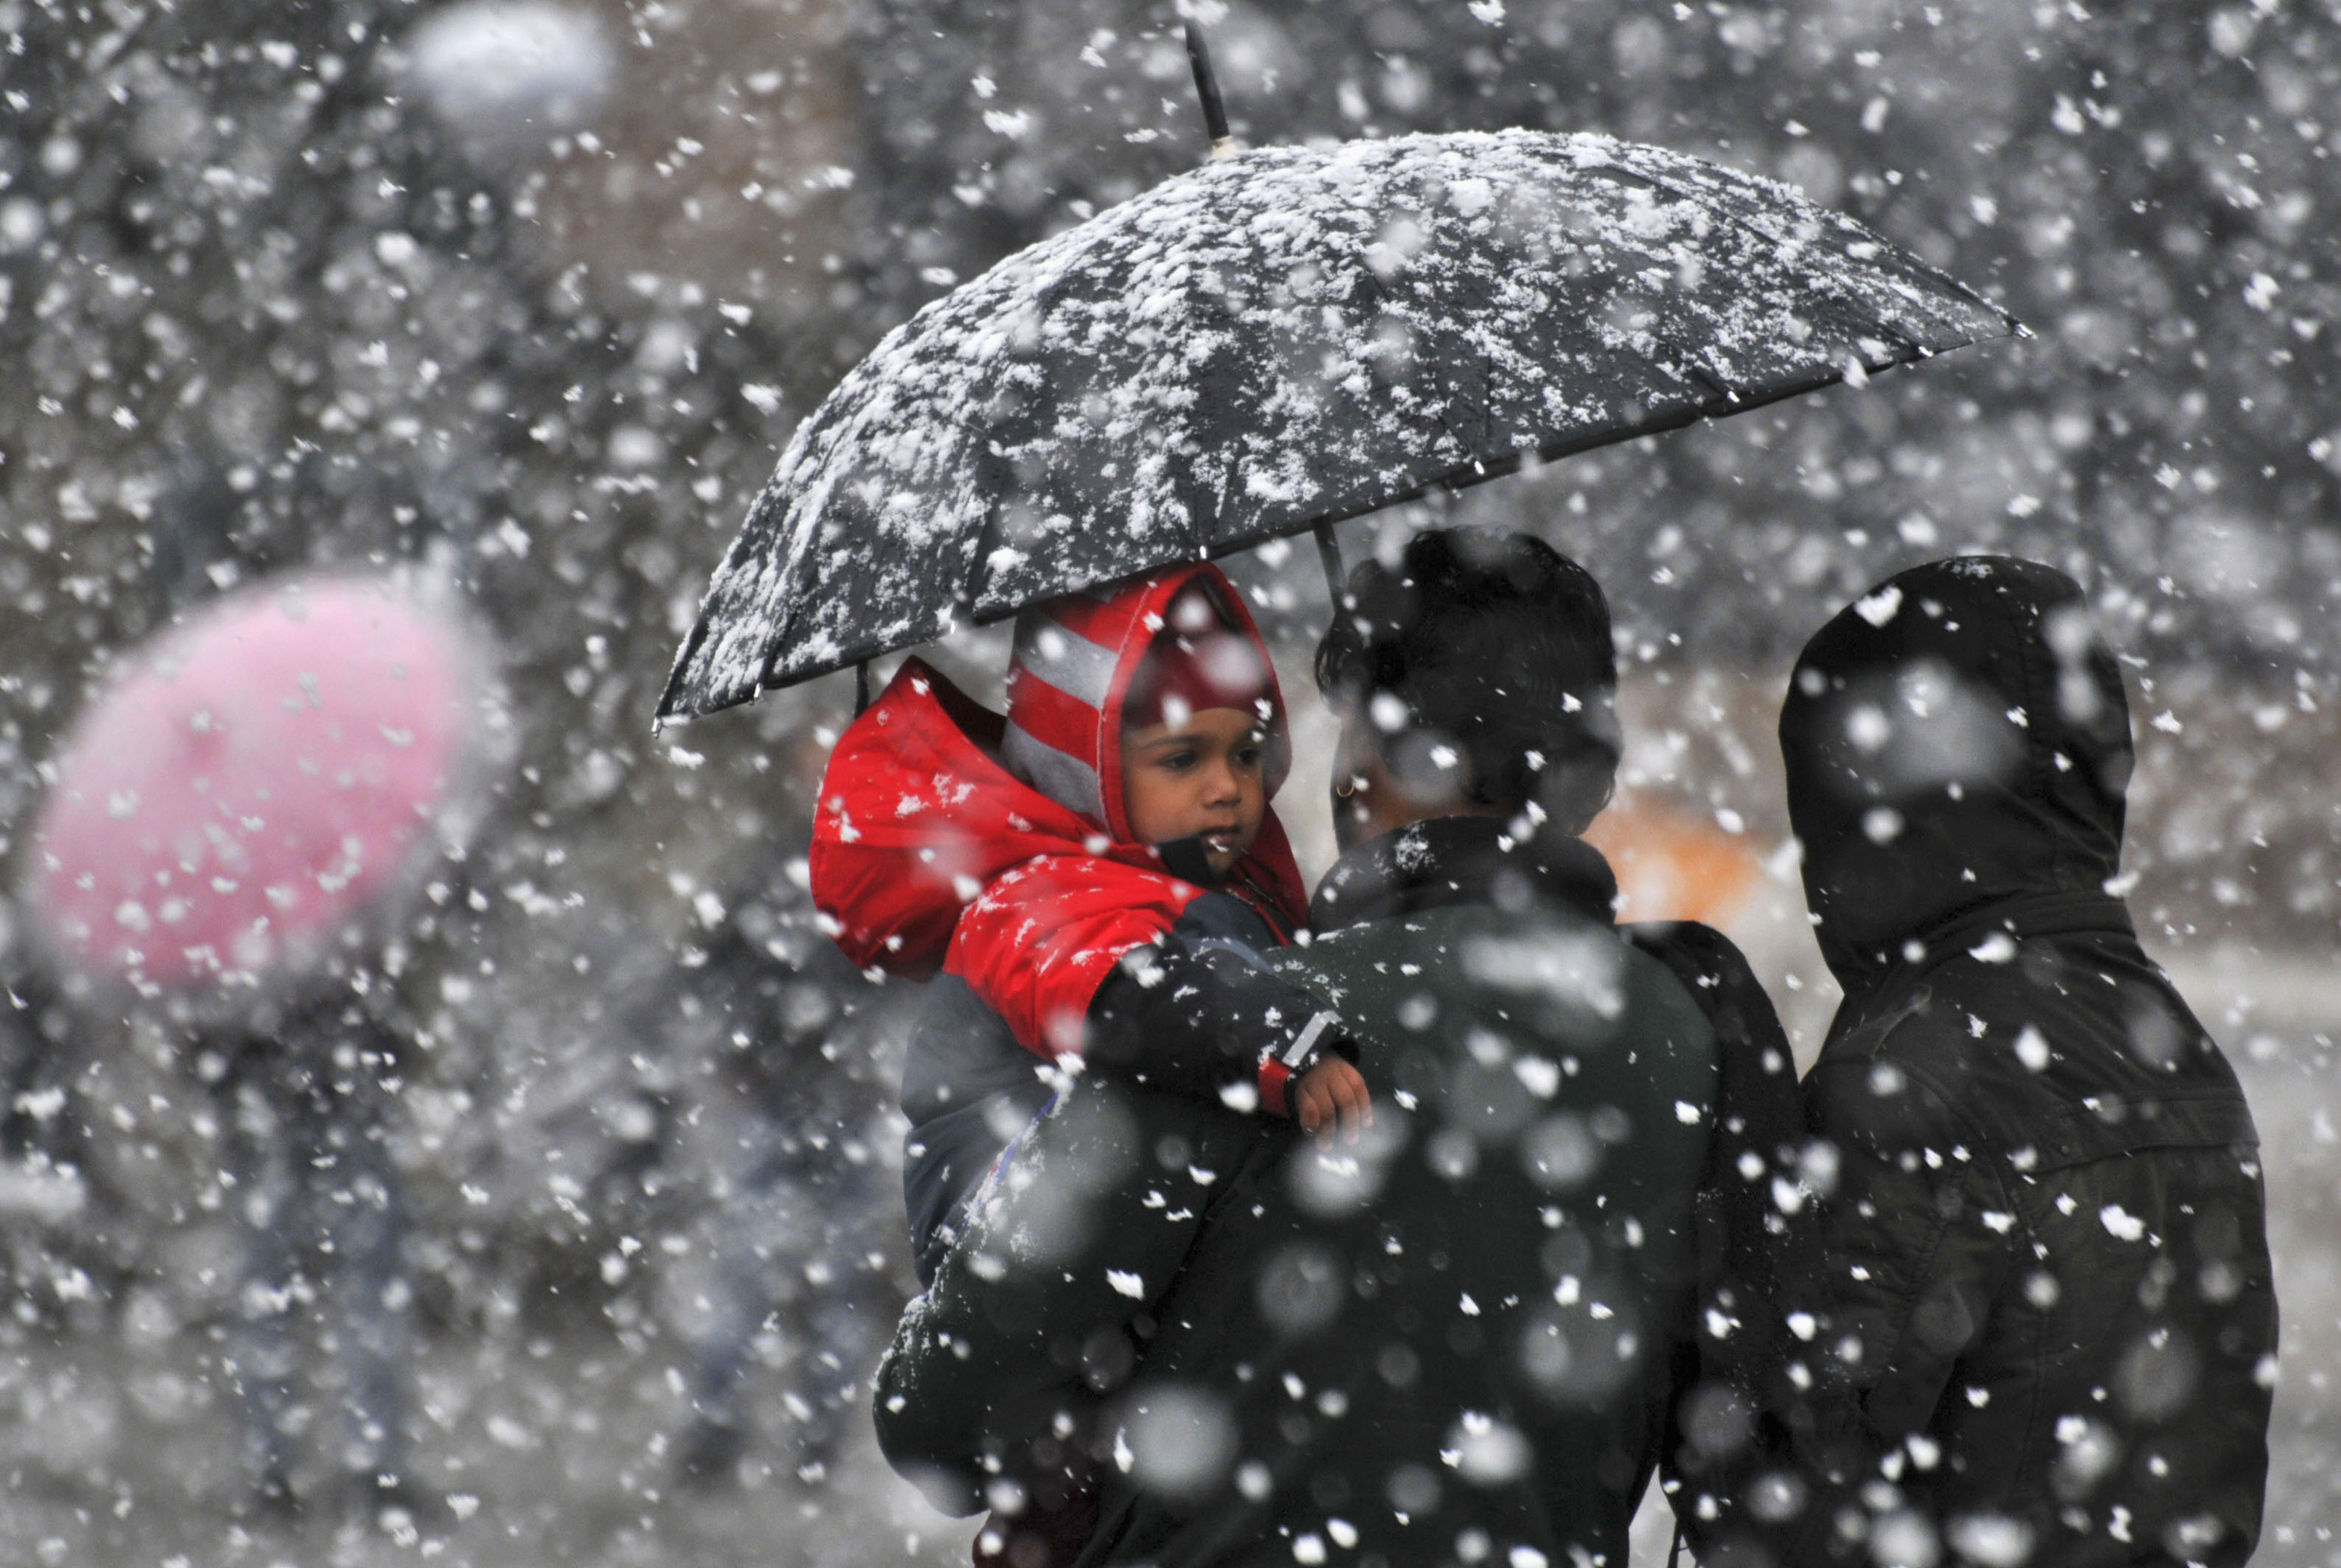 A family uses an umbrella to shelter themselves from heavy snowfall in the northern Indian hill town of Shimla March 1, 2014. REUTERS/Stringer (INDIA - Tags: ENVIRONMENT SOCIETY) - RTR3FV1J